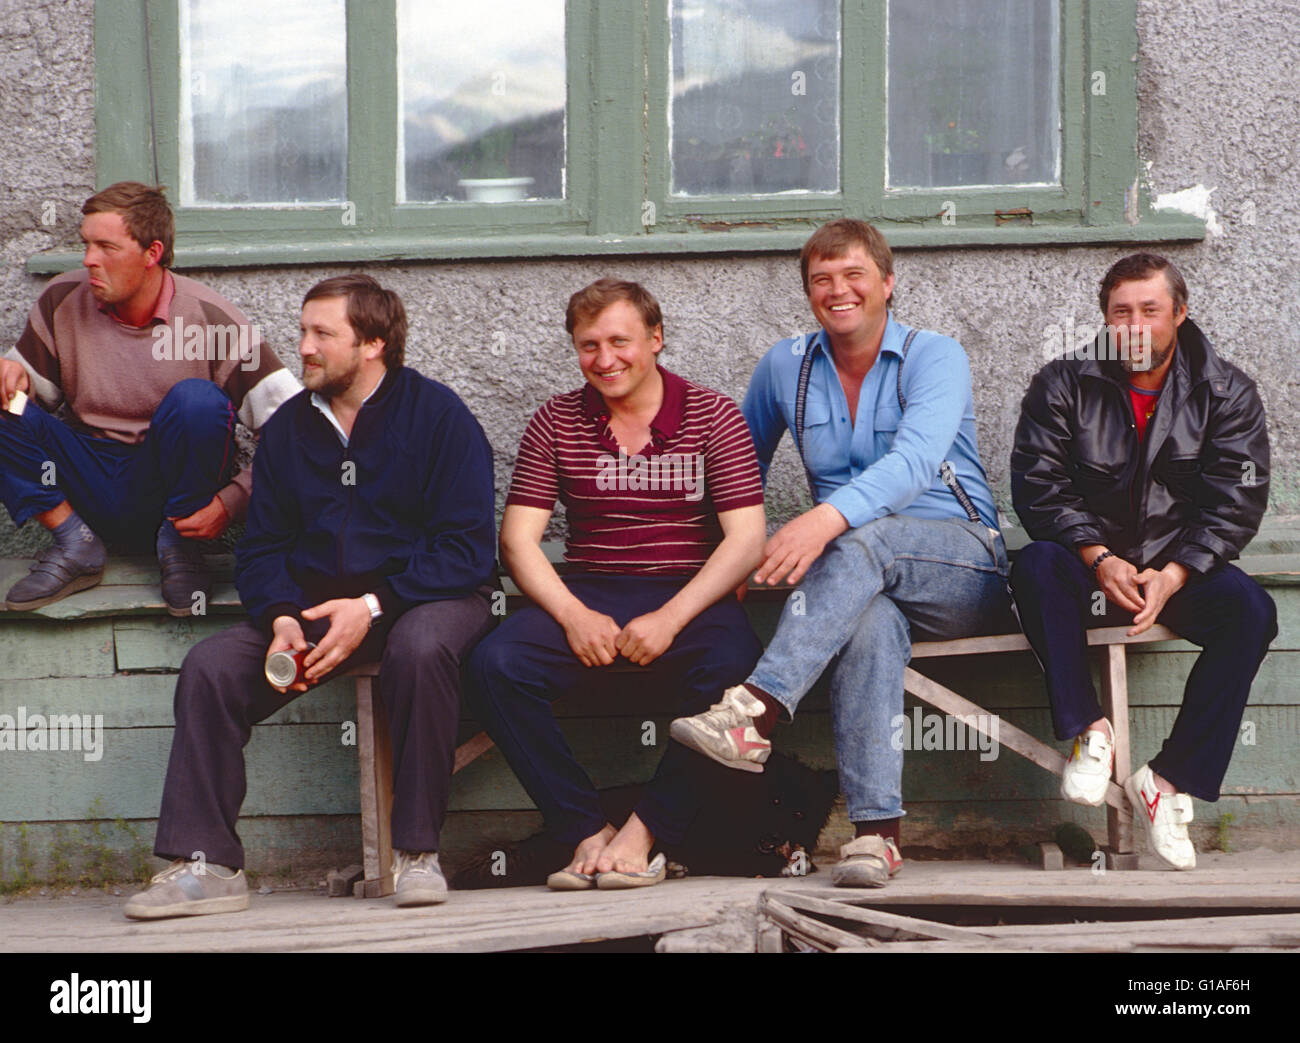 LOCAL MEN RELAX ON OUTDOOR BENCH; EGVEKINOT, MAGADAN REGION; COASTAL TOWN ON BERING SEA; RUSSIAN FEDERATION - Stock Image